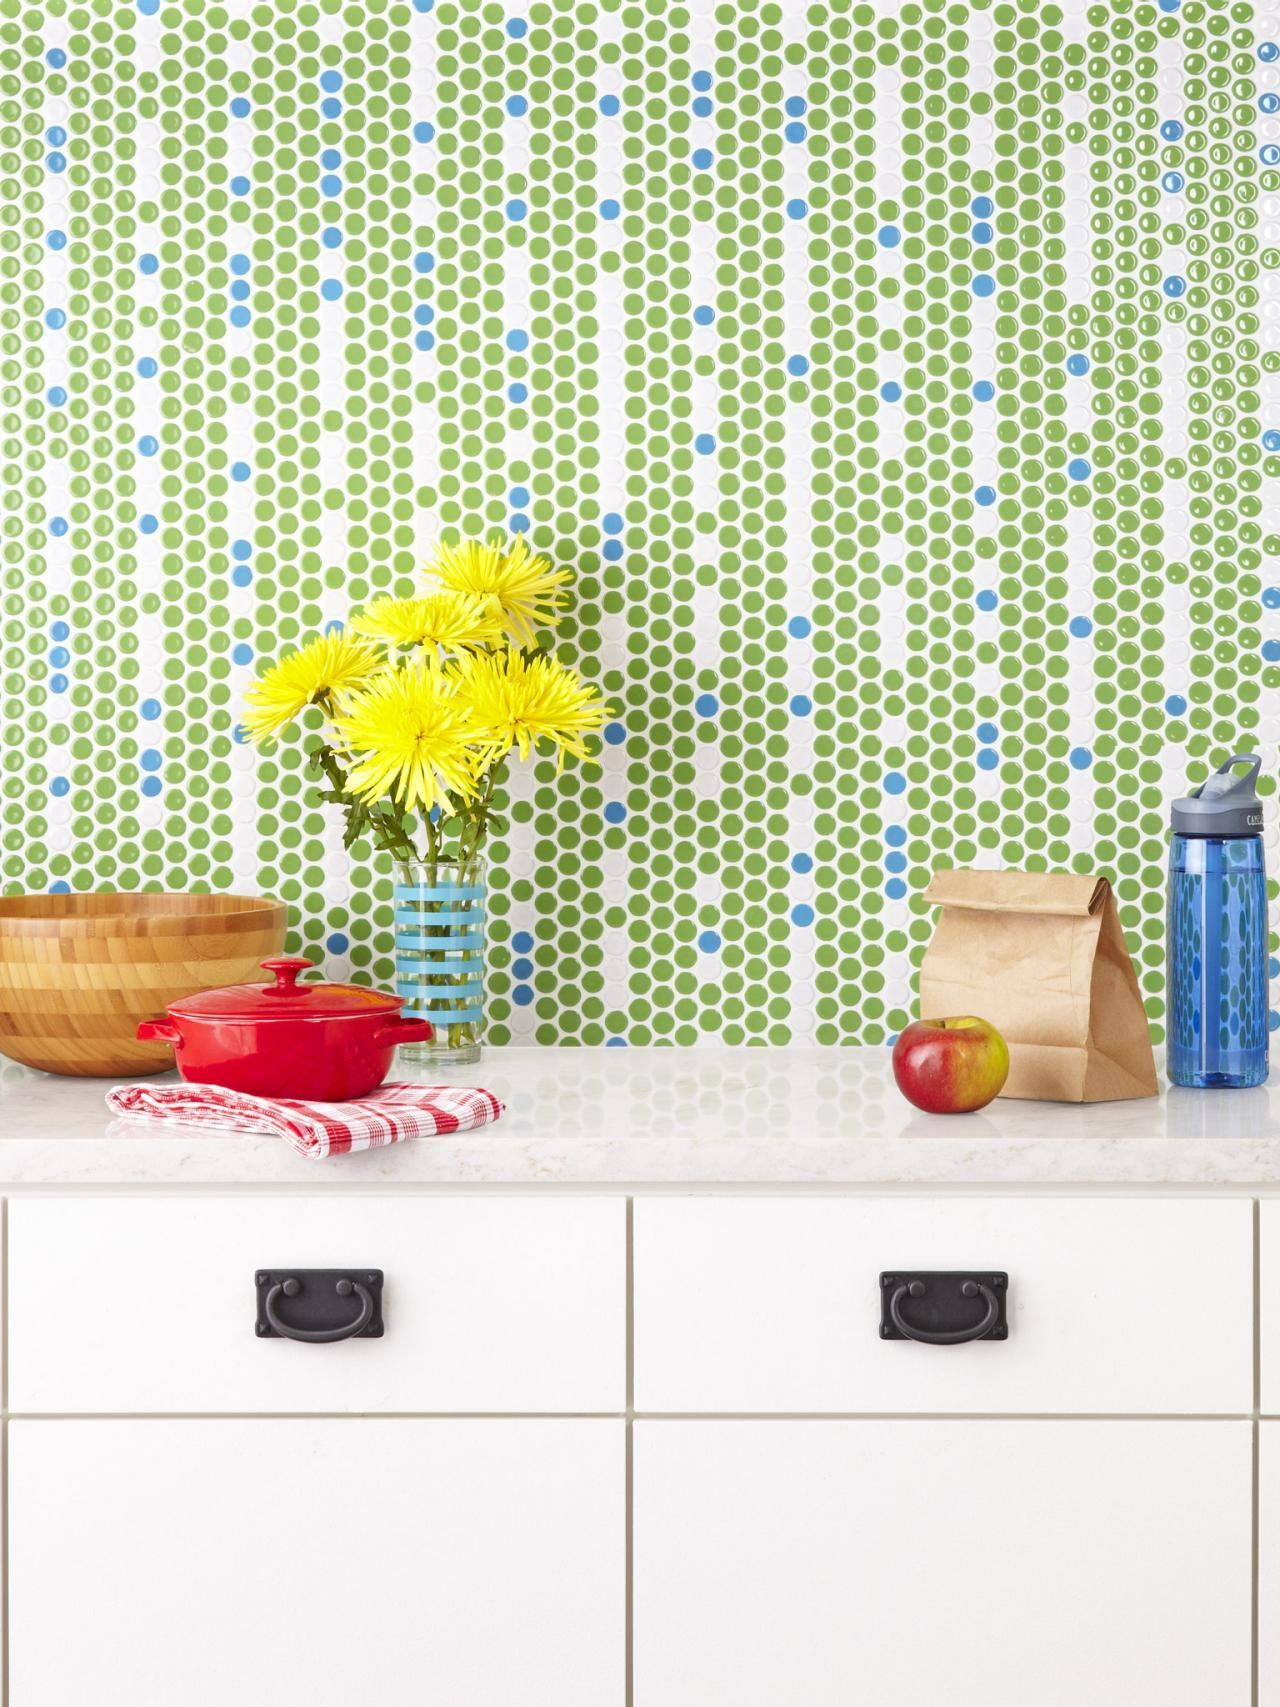 30 Penny Tile Designs That Look Like A Million Bucks Blue Penny Tile Backsplash Tile Design Penny Tile